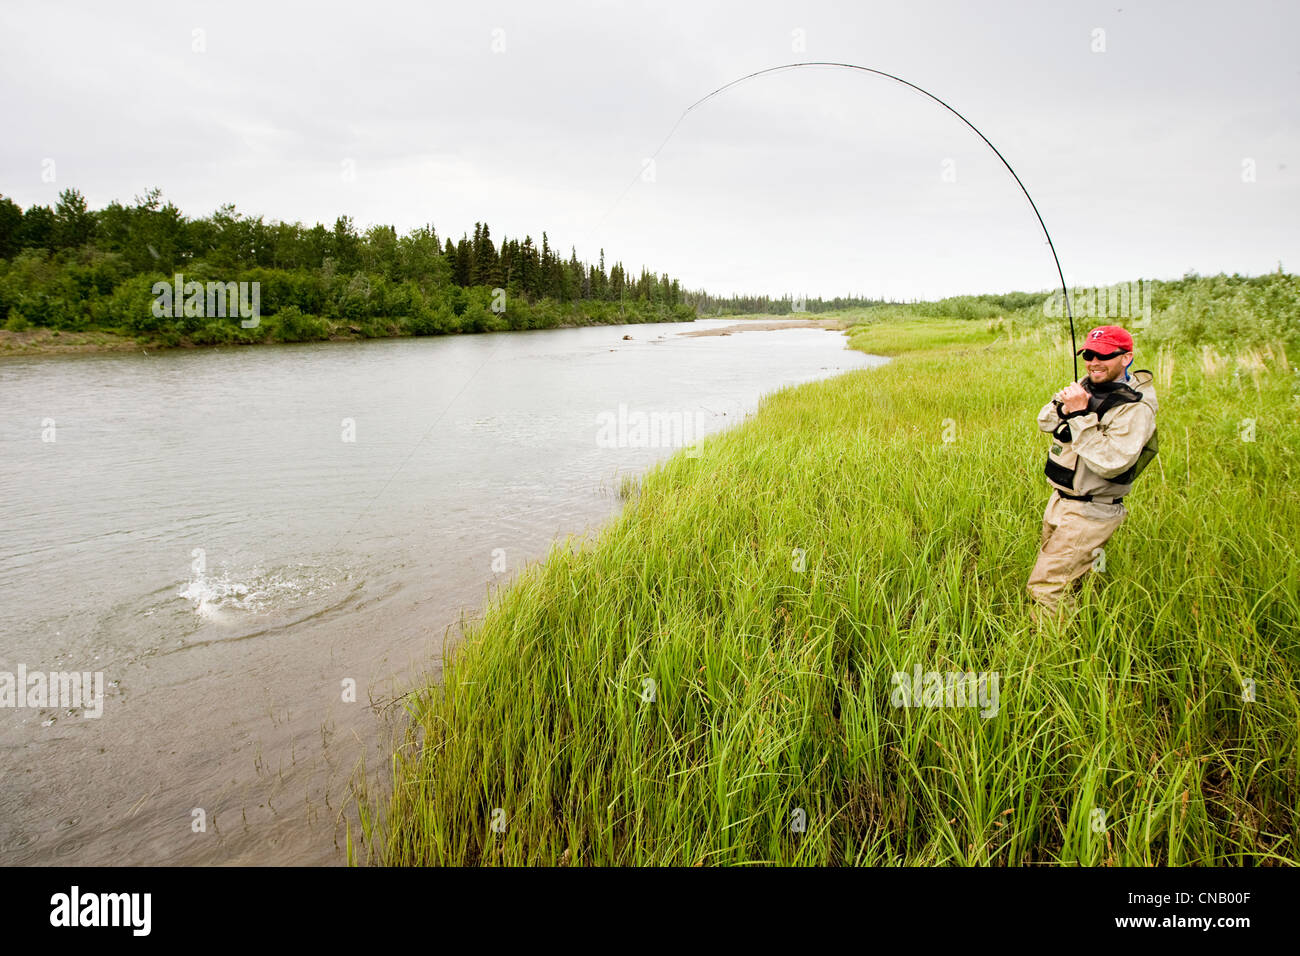 Fly fisherman fights a sockeye salmon on the Mulchatna River in the Bristol Bay area, Southwest Alaska, Summer - Stock Image